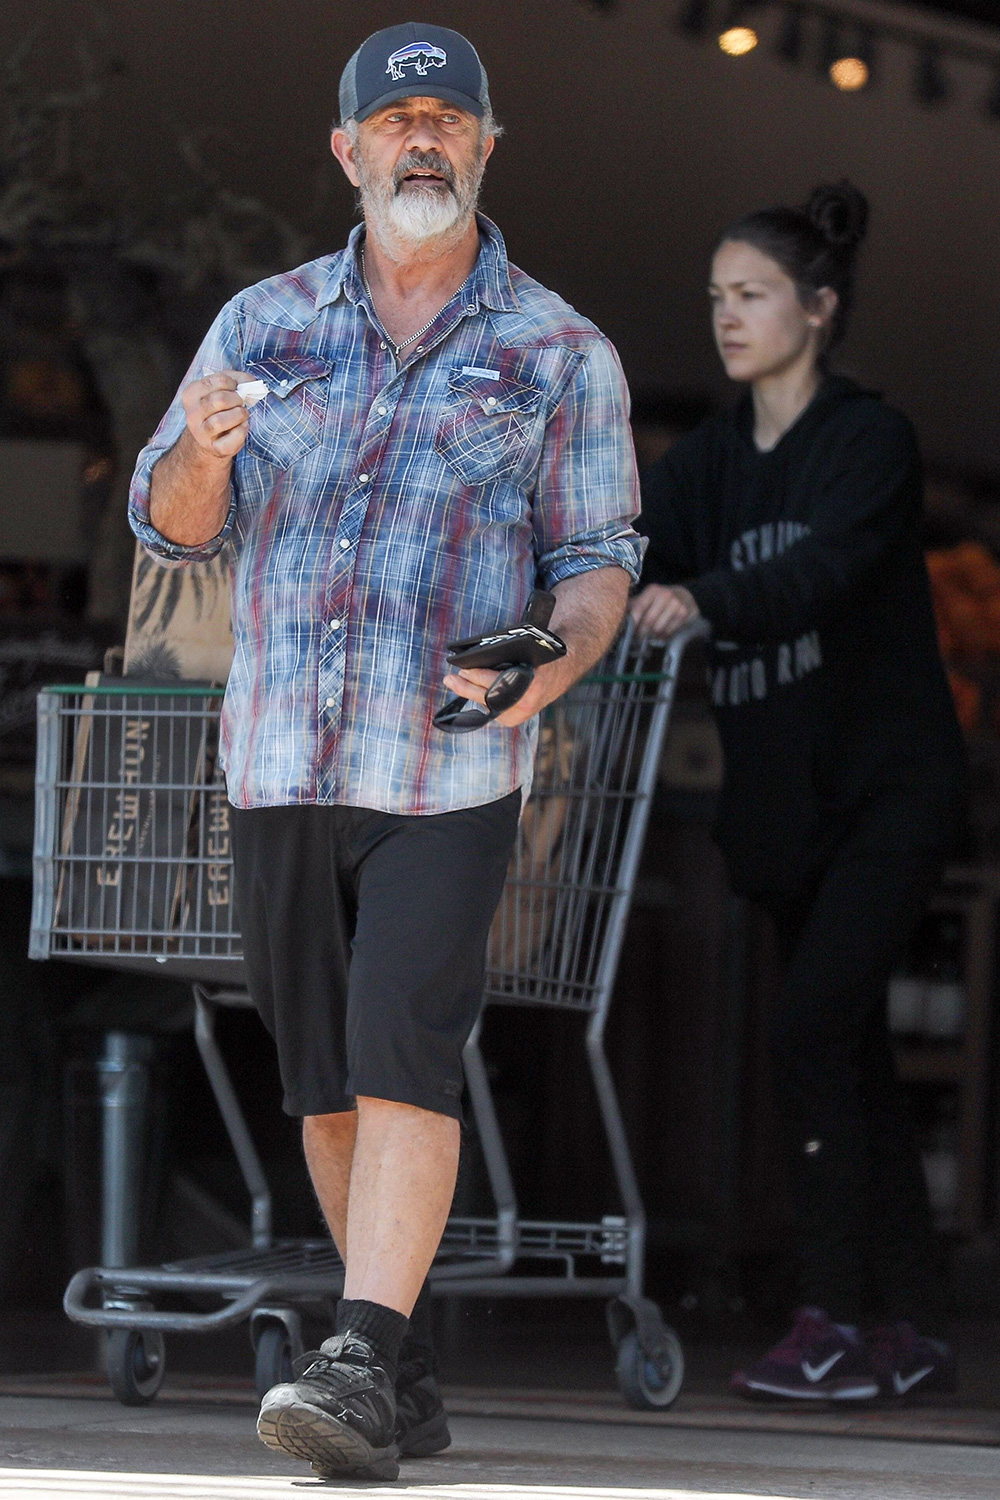 A scruffy Mel Gibson makes a trip to Erehwon Organic this afternoon with girlfriend Rosalind Ross to get some fresh groceries